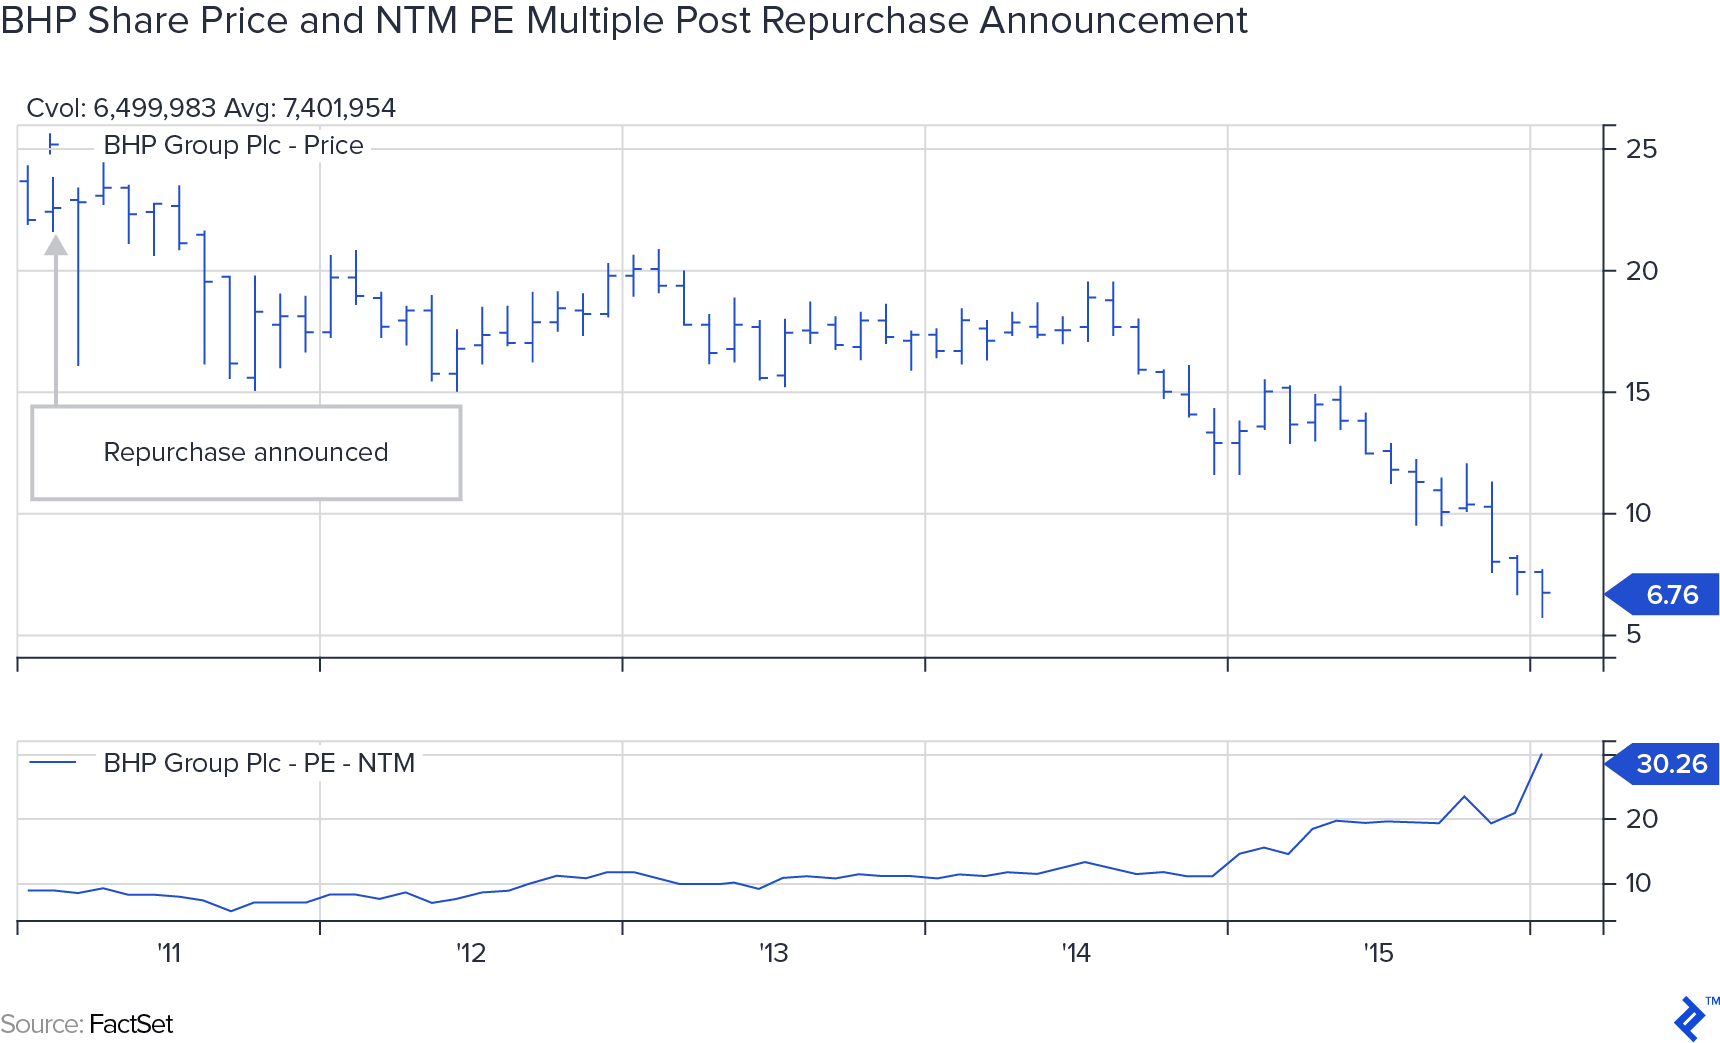 BHP share price and NTM PE multiple post repurchase announcement